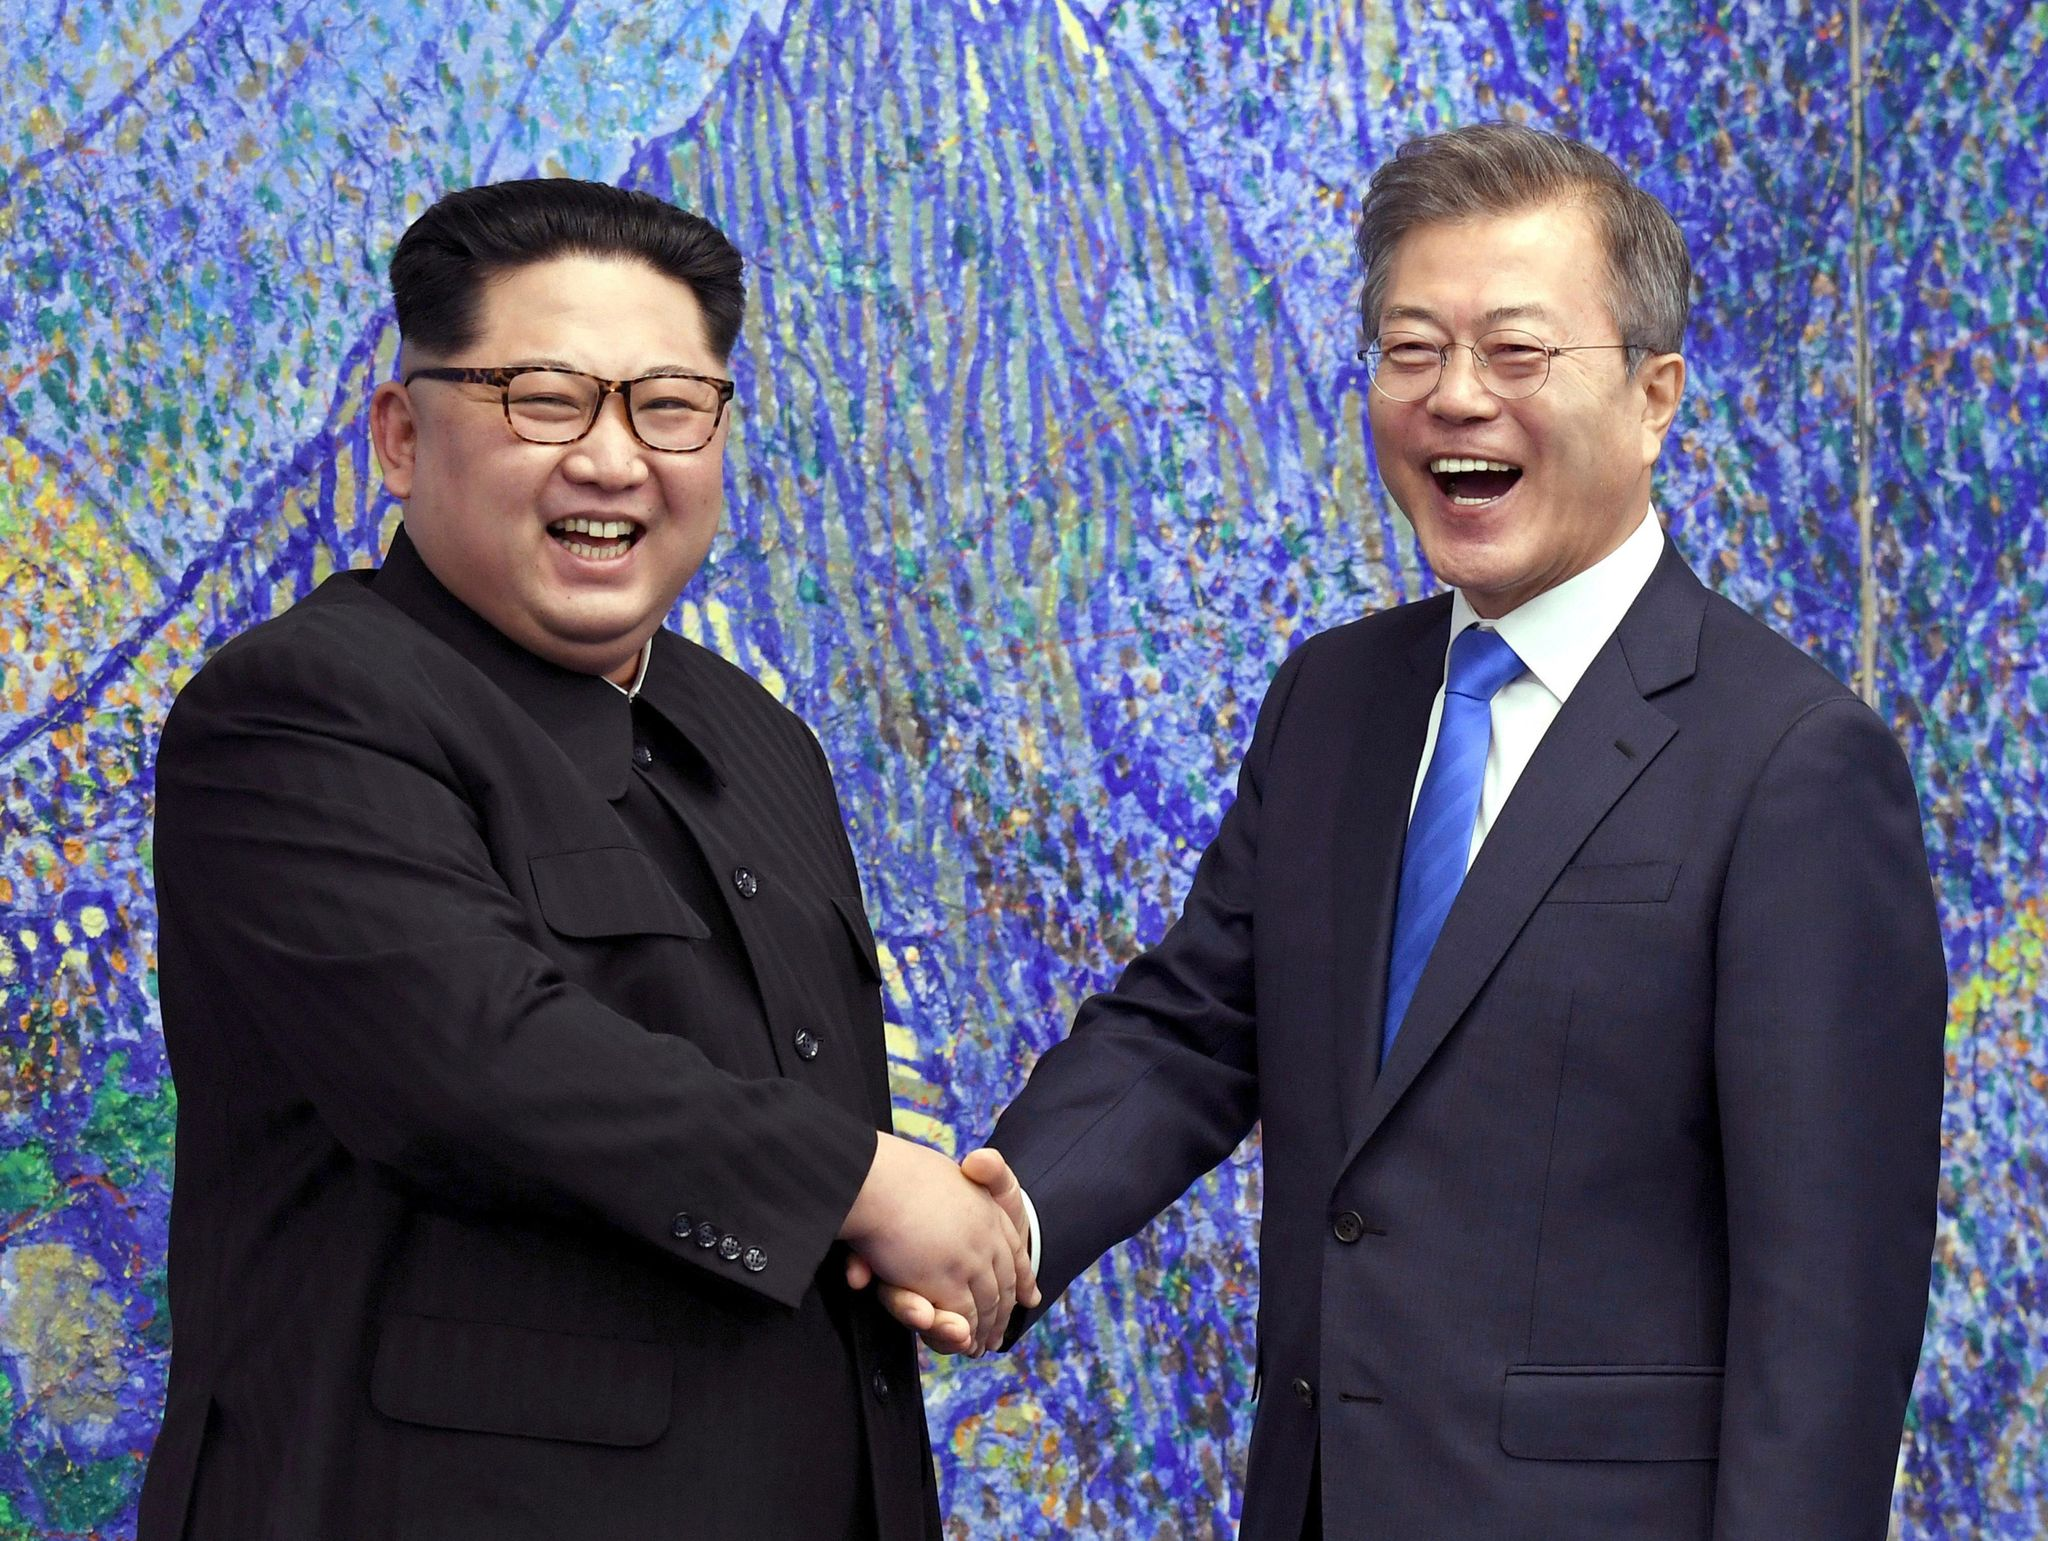 Donald Trump, South Korea's Moon Jae-in talk North Korea denuclearization